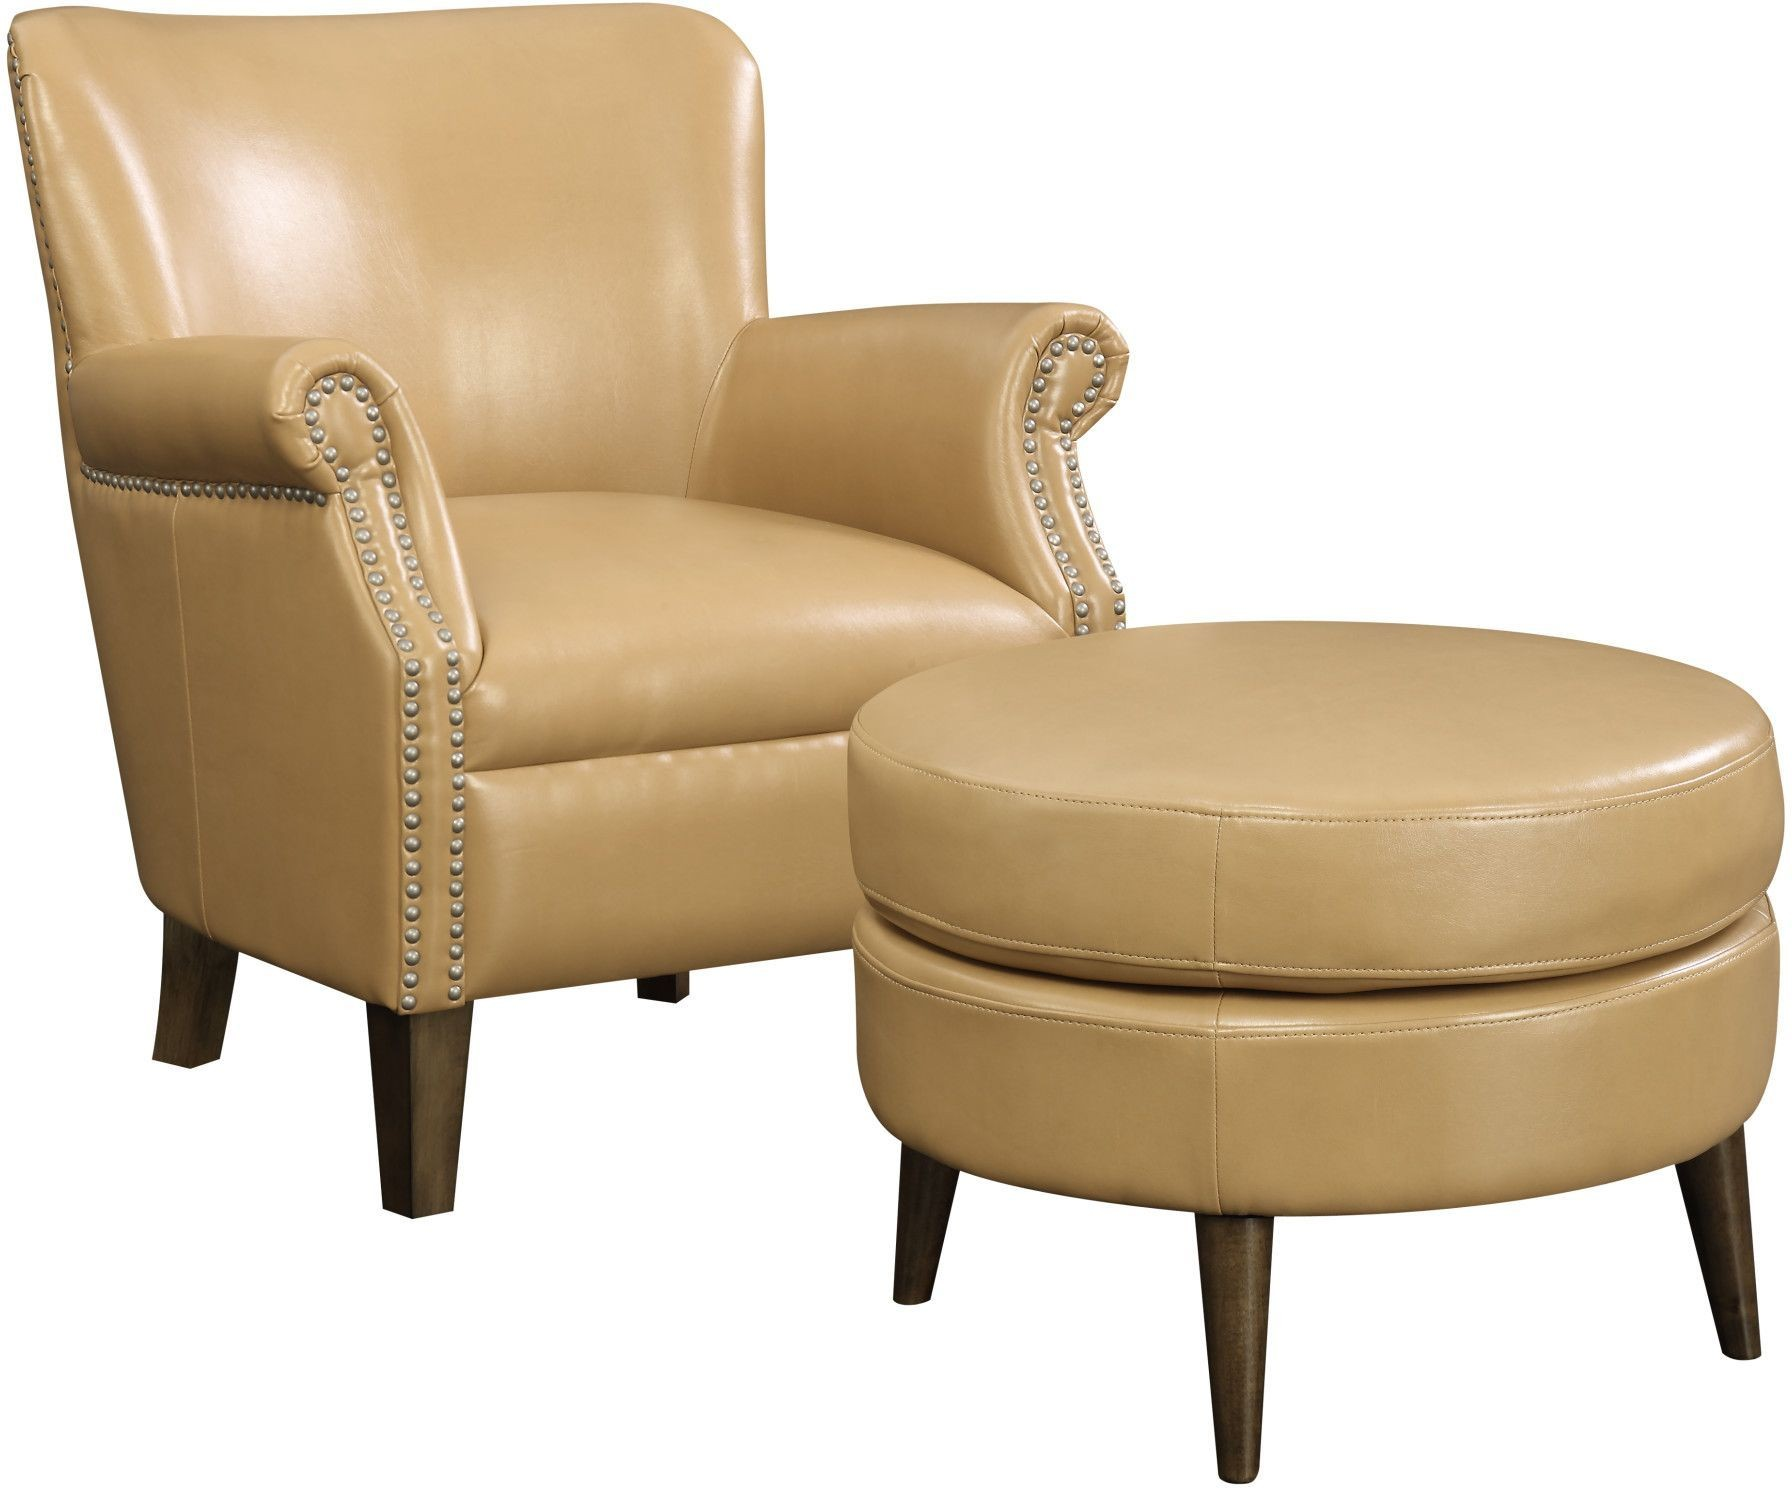 brown accent chair with ottoman used patio chairs for sale oscar saddle and from emerald